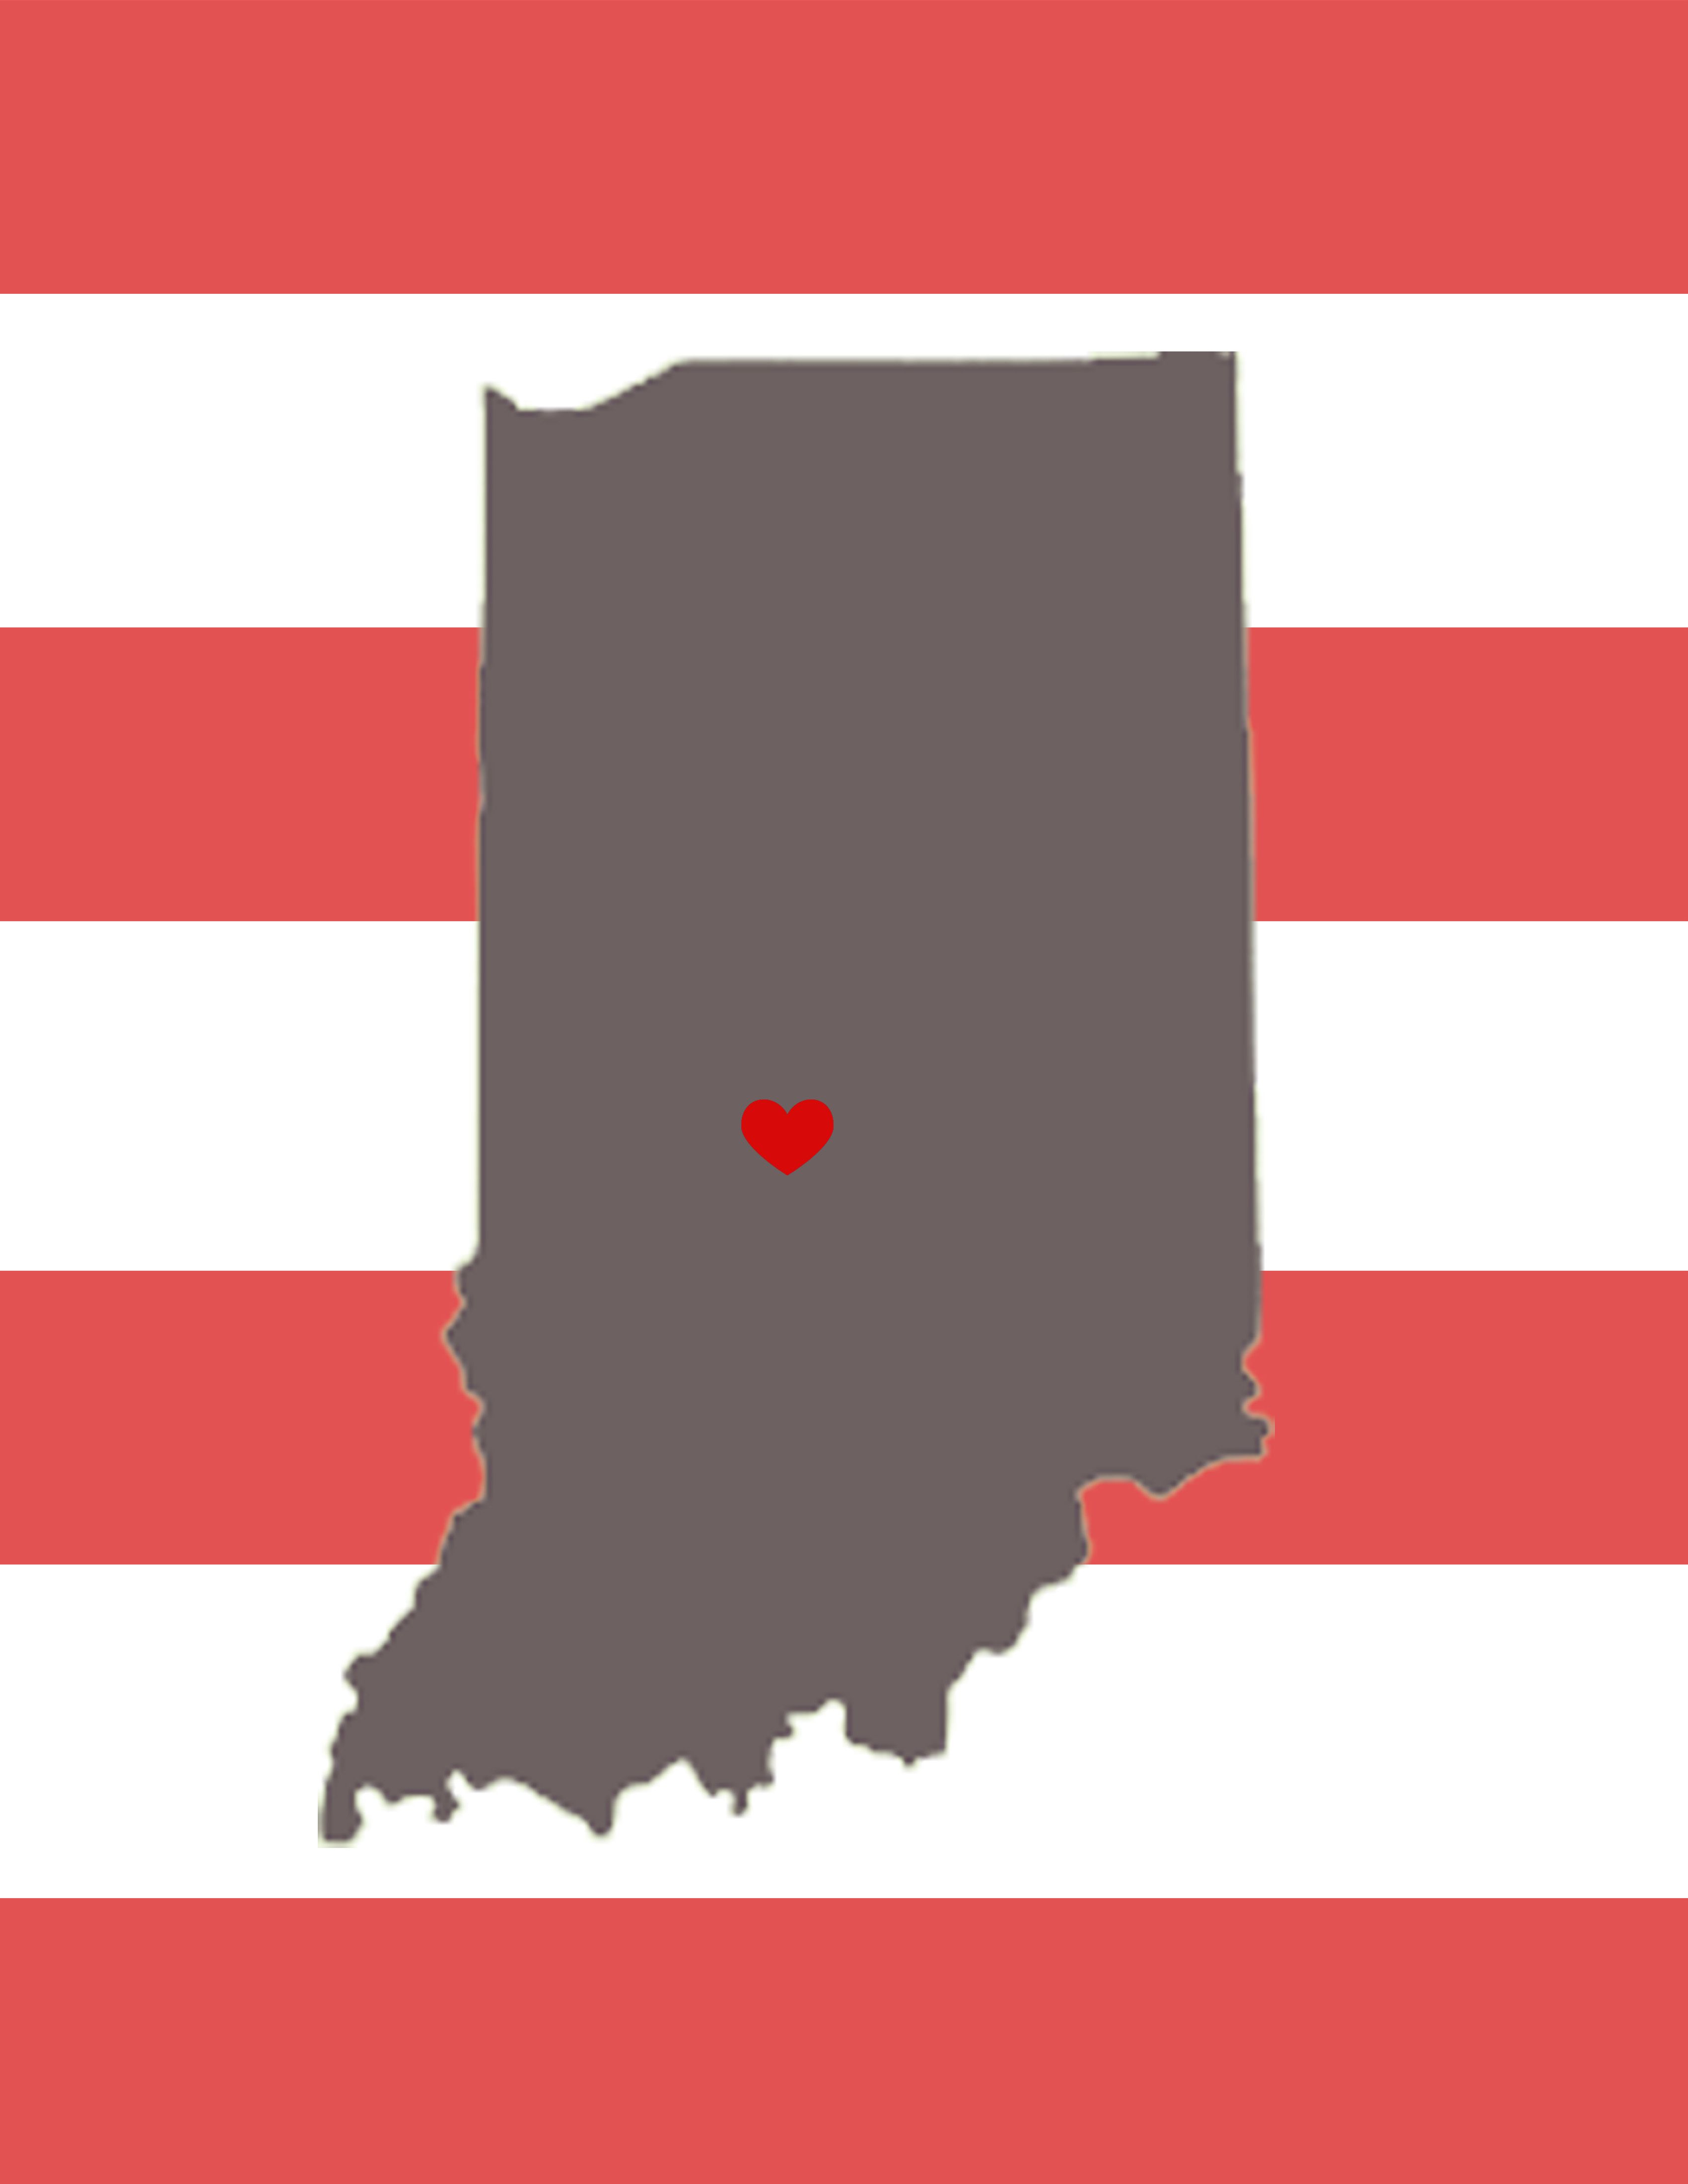 Created By Sarah Laborde Indiana State Printable Heart On Bloomington In Indiana University Go Hoosiers Want The Indiana University Indiana State Indiana